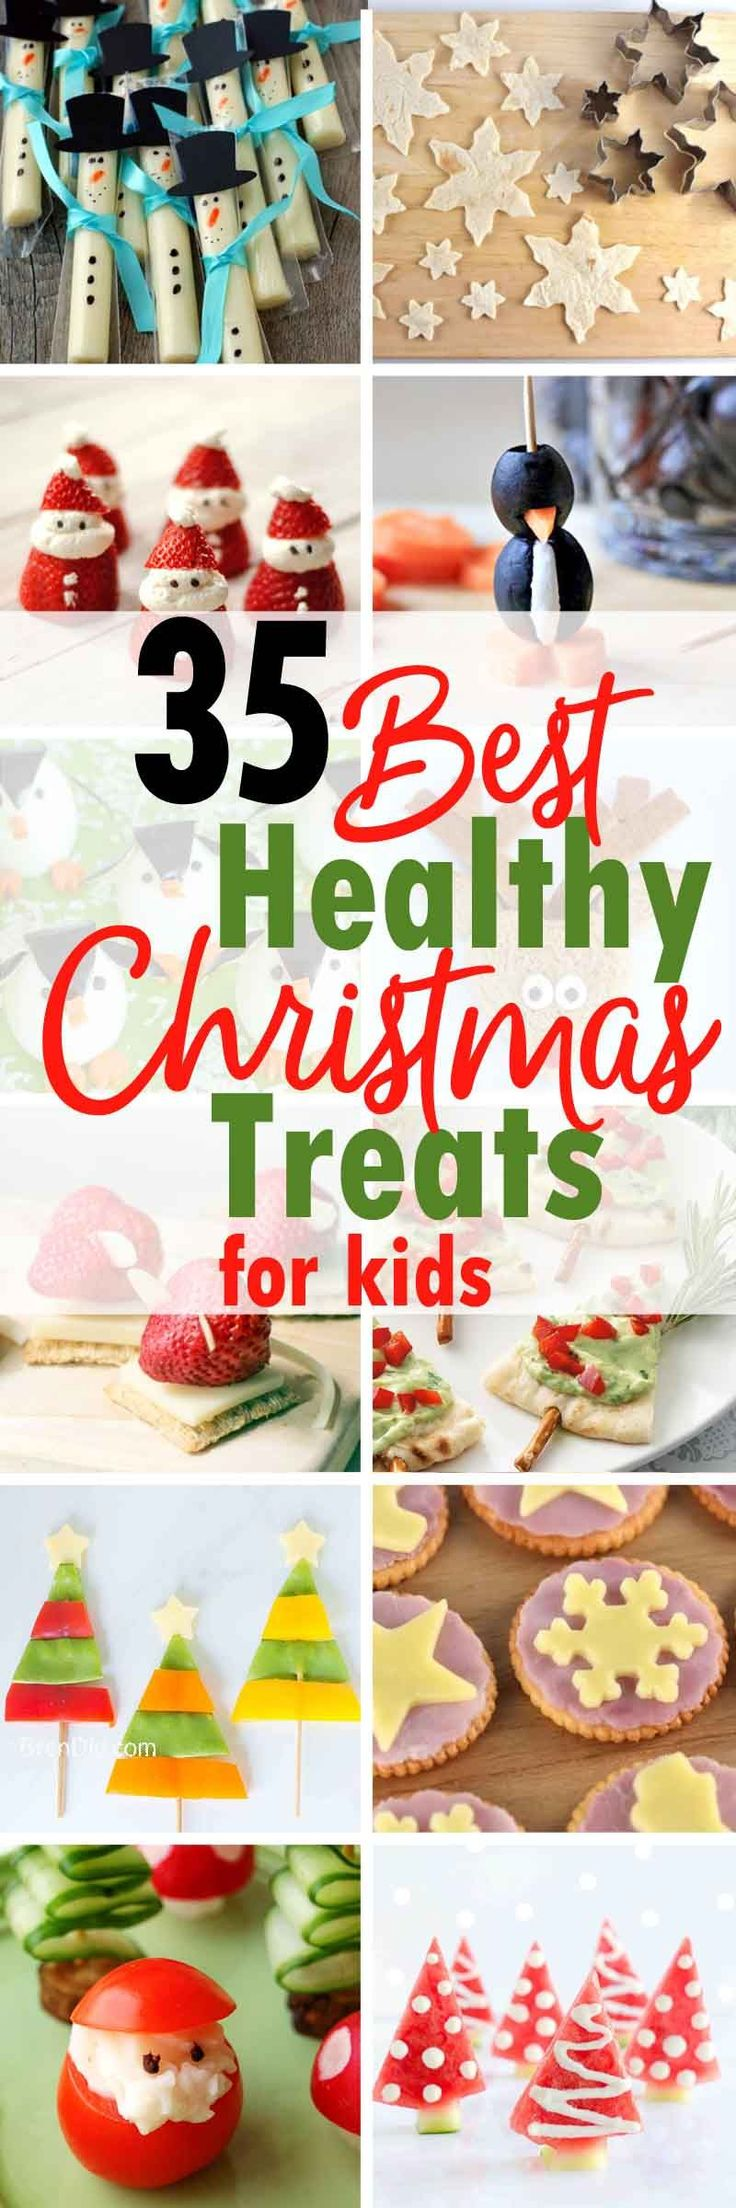 Healthy Christmas Treats for Kids